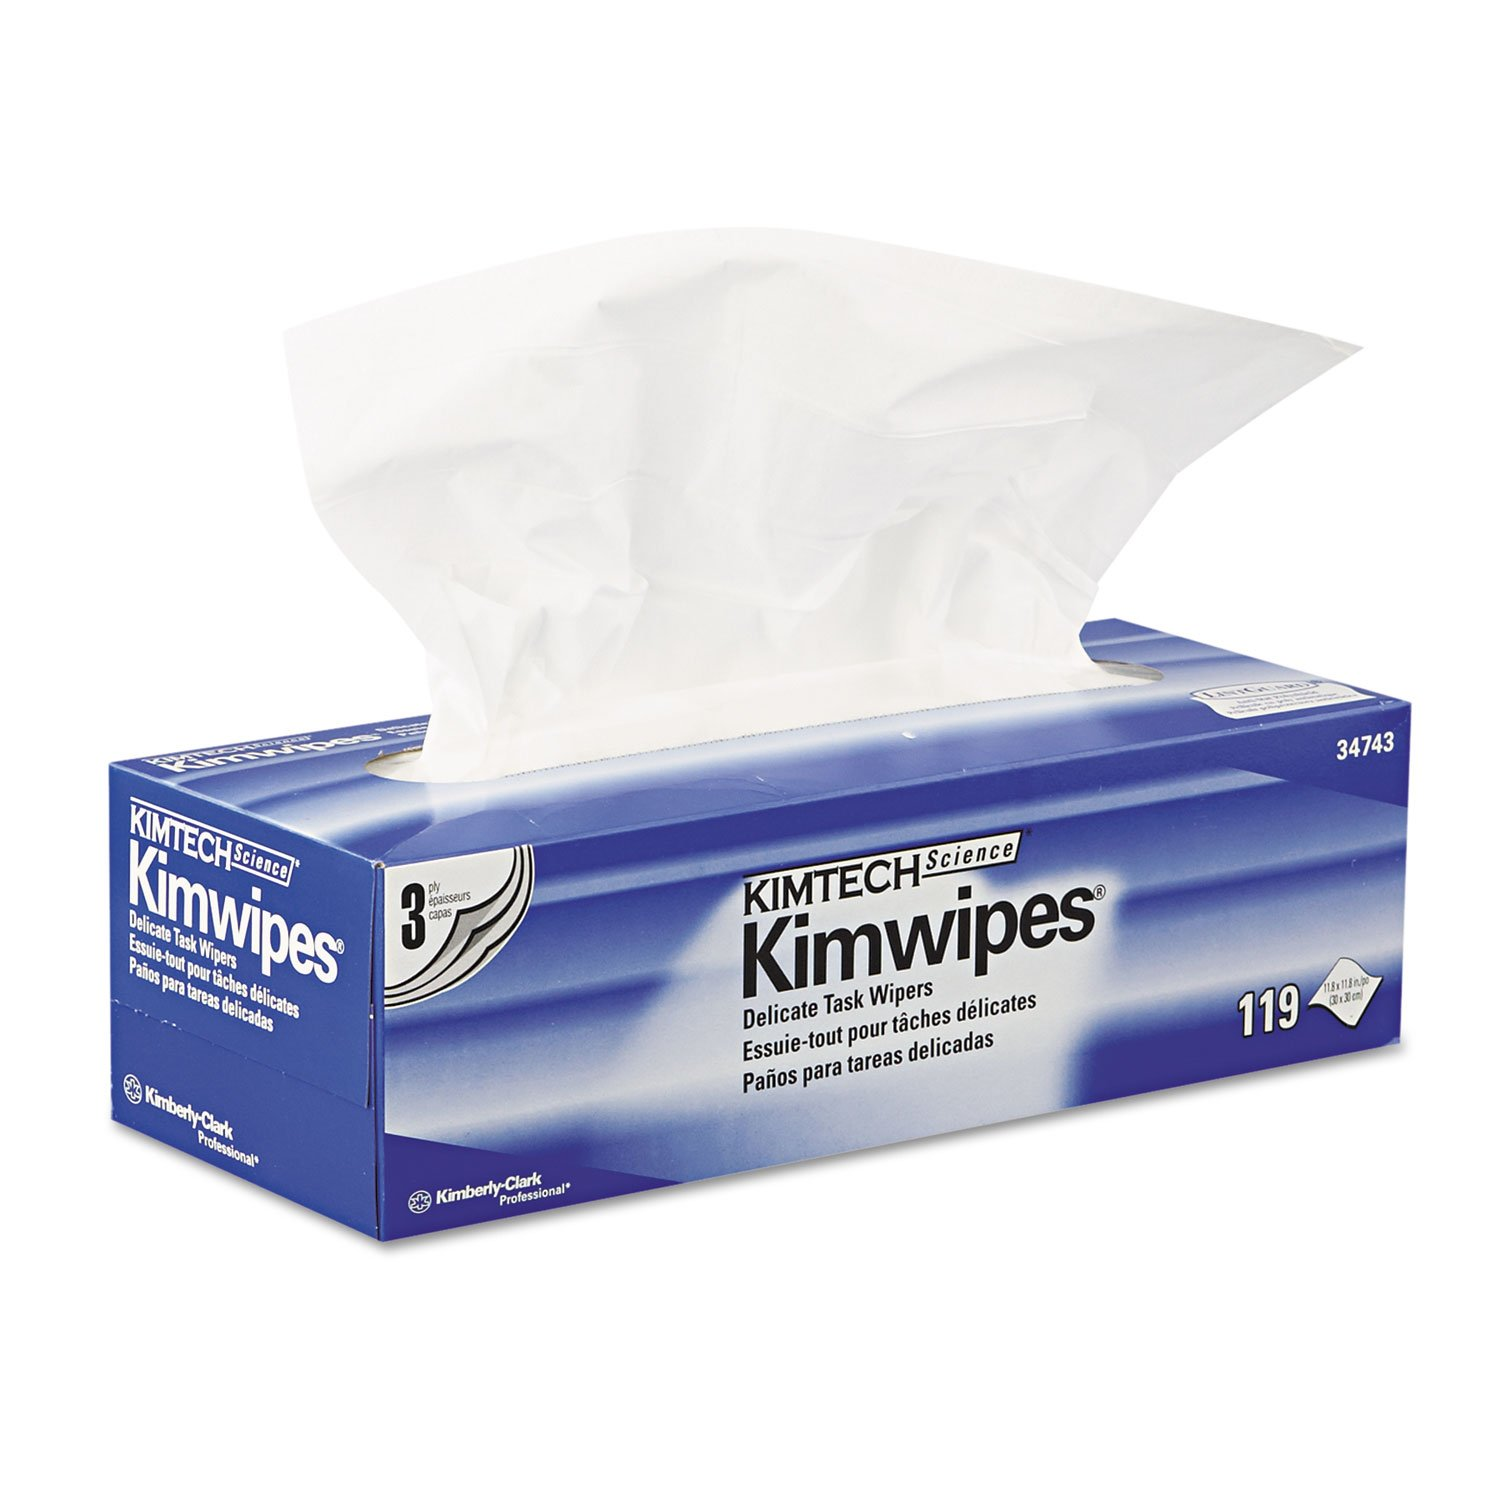 Kimberly Clark Safety 34743 White Kimwipes Delicate Task Wipers, 3-ply:  Amazon.com: Industrial & Scientific